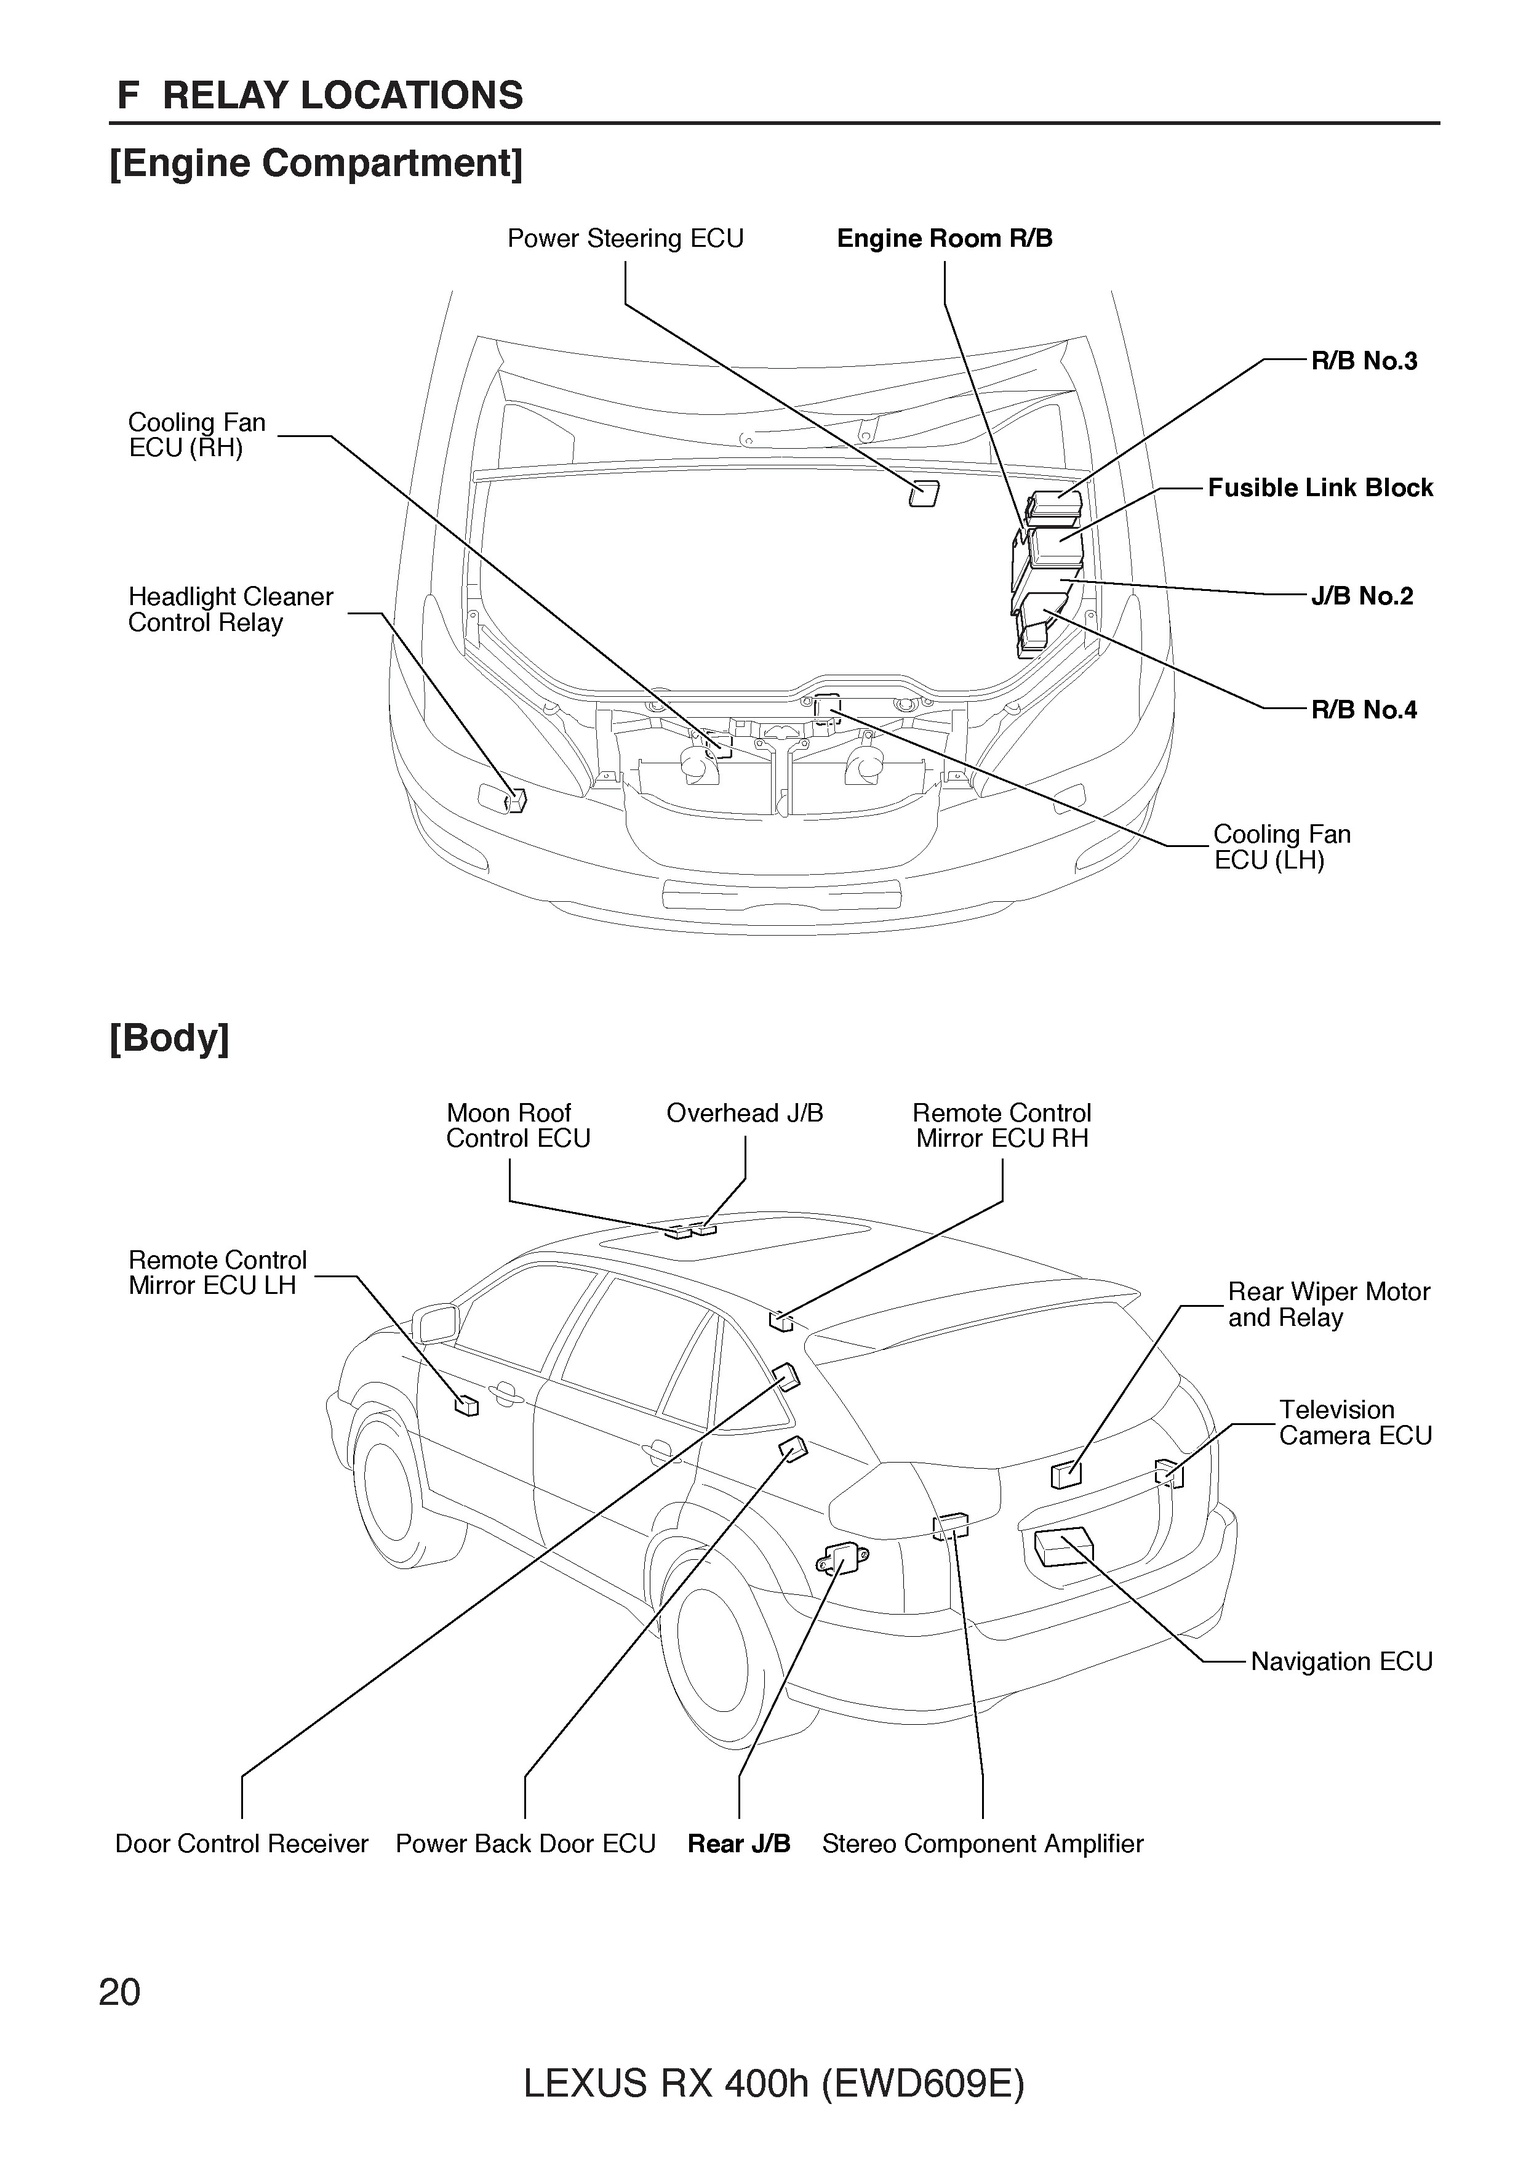 Free 2005 Lexus Rx400h Oem Electrical Wiring Diagram Automotive Diagrams Pdf